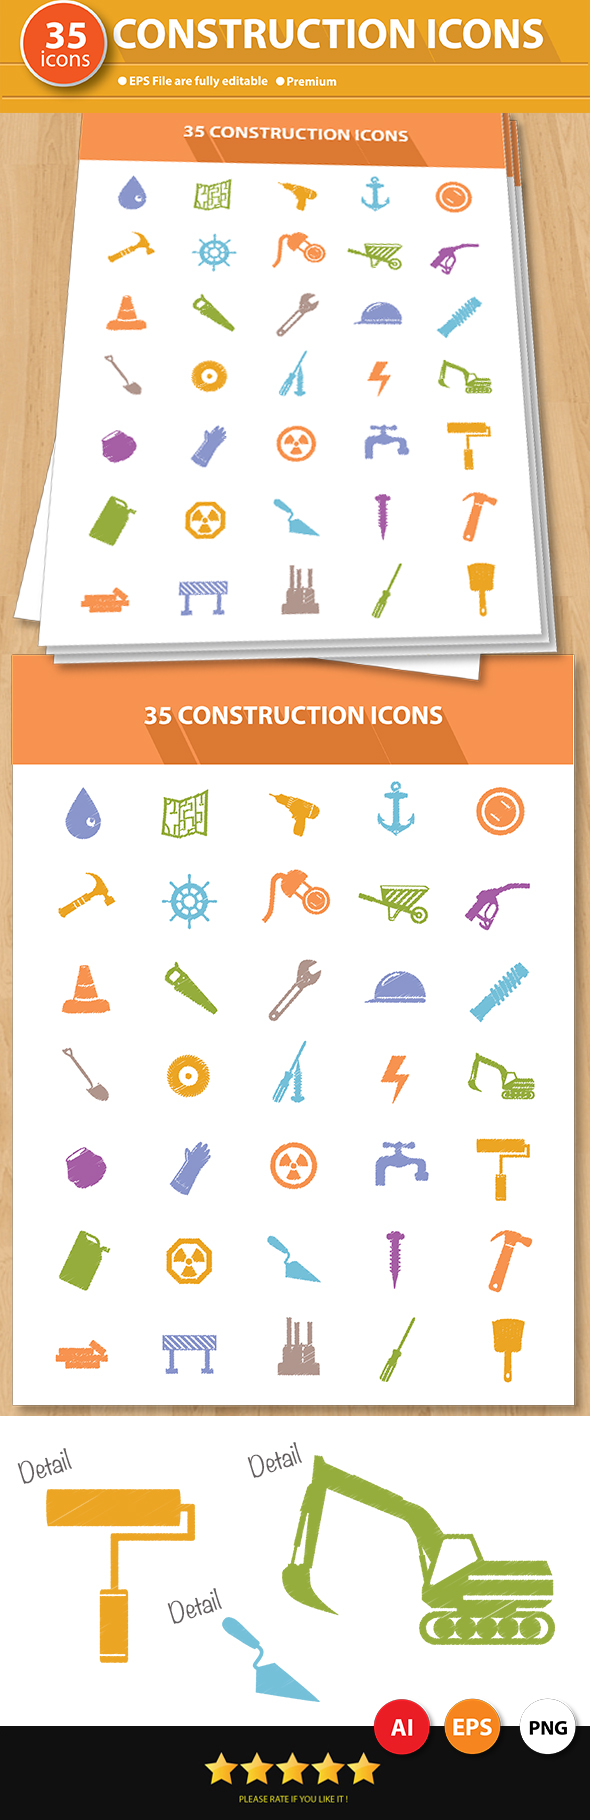 GraphicRiver 35 Construction Icons 7050155